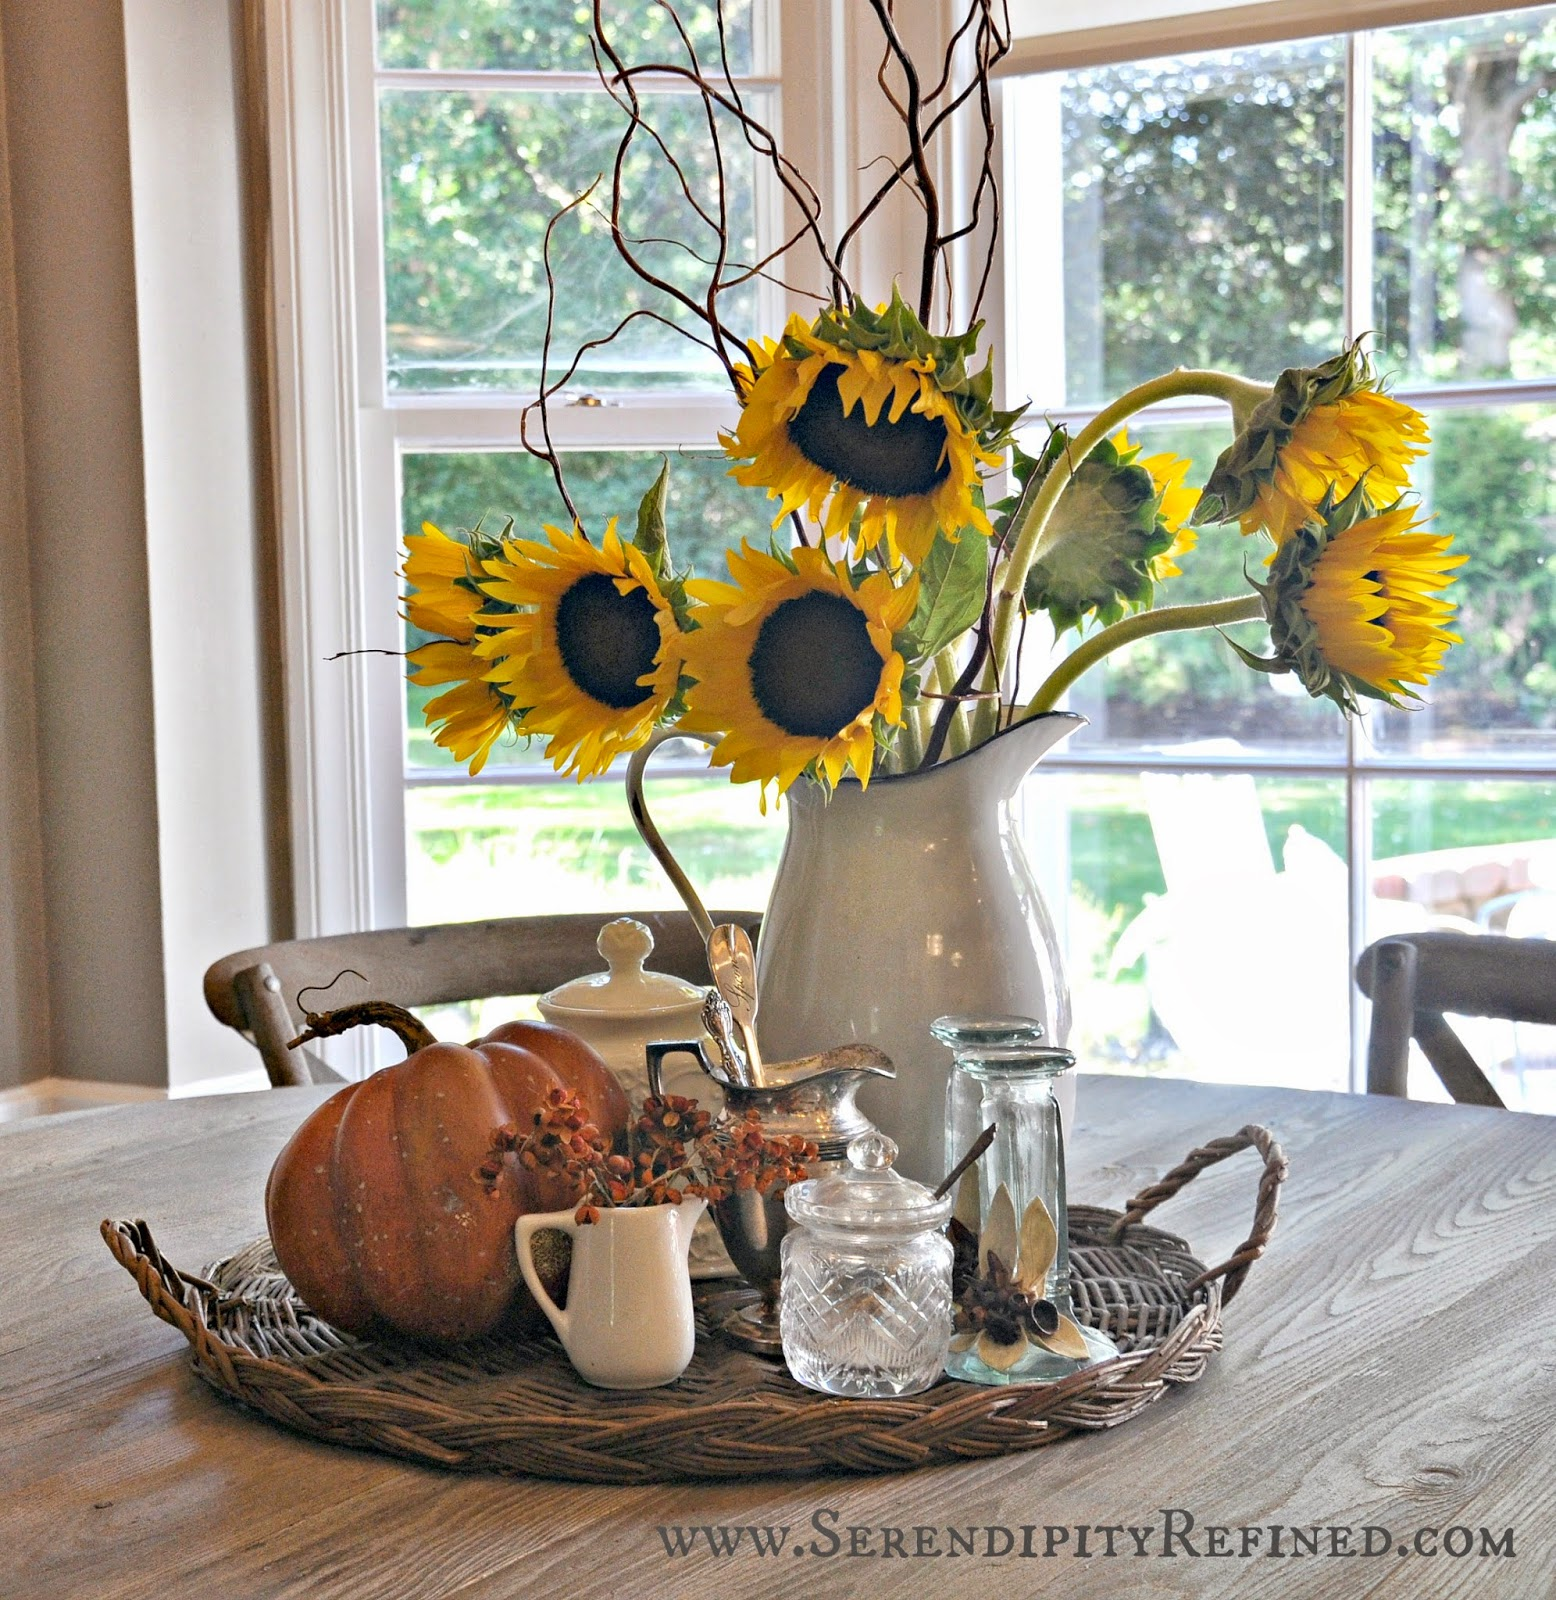 Serendipity Refined: Inside The French Farmhouse: Fall Decorating - Decorating Top Of Cabinets With Sunflowers